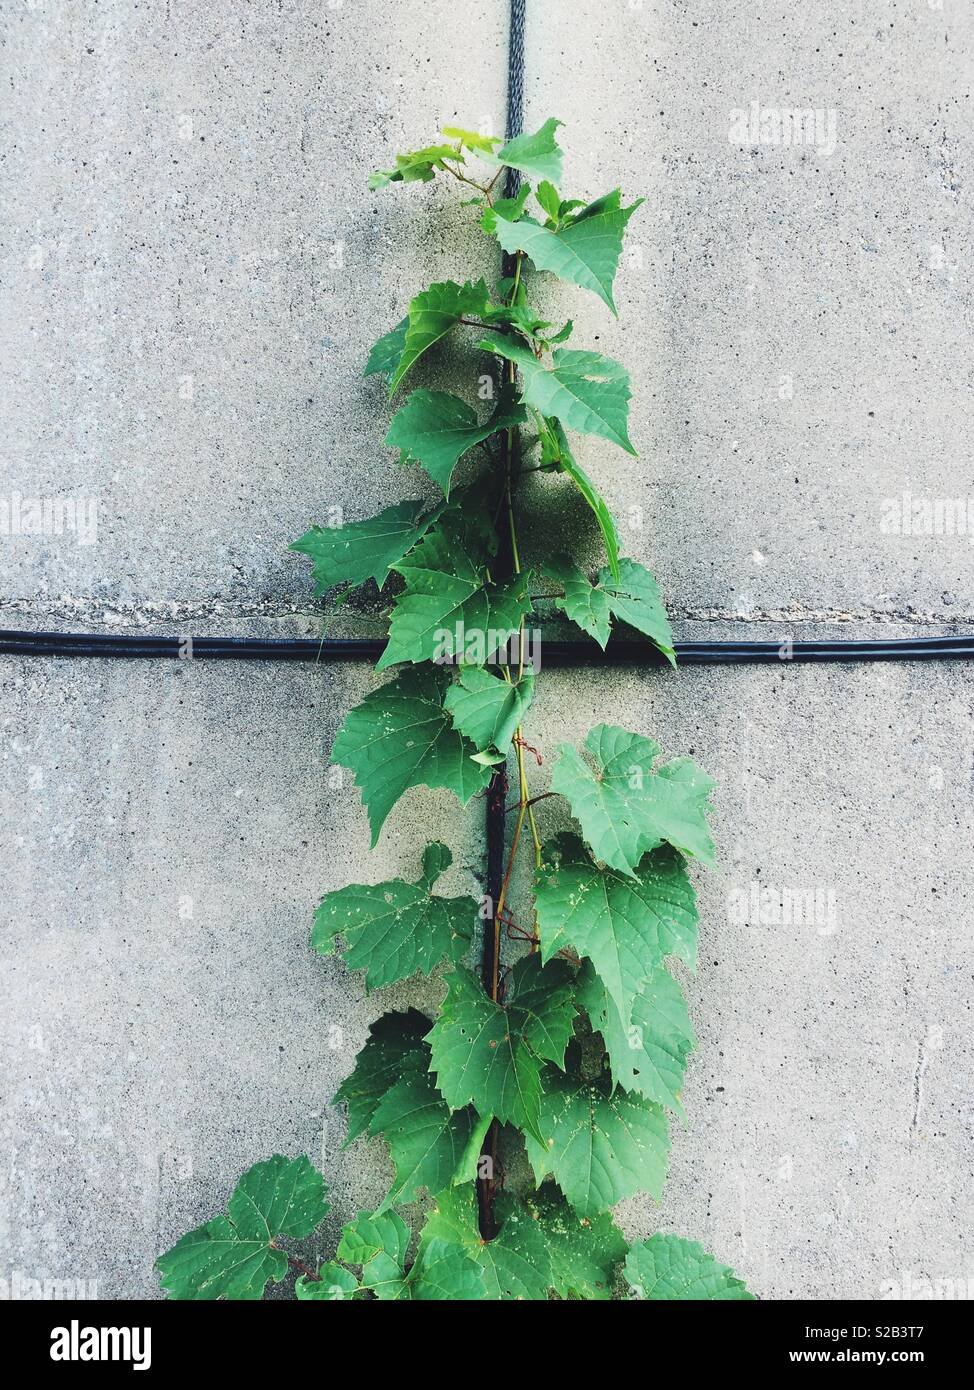 Green ivy growing against steel and concrete. - Stock Image